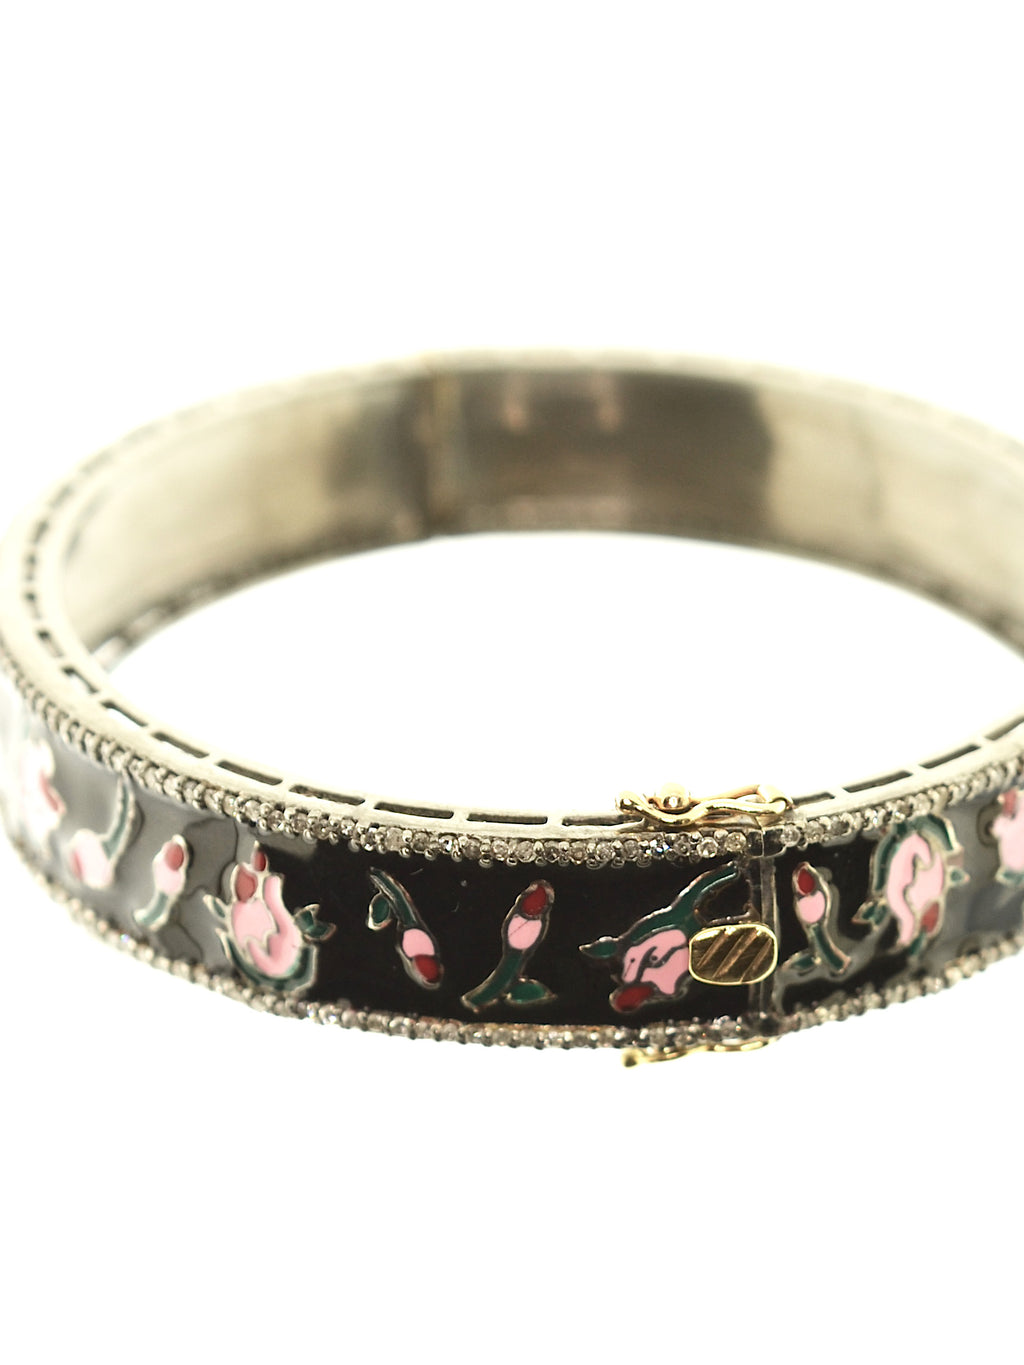 Pink and Black Enamel Rose Bangle with Pave Diamonds in Sterling